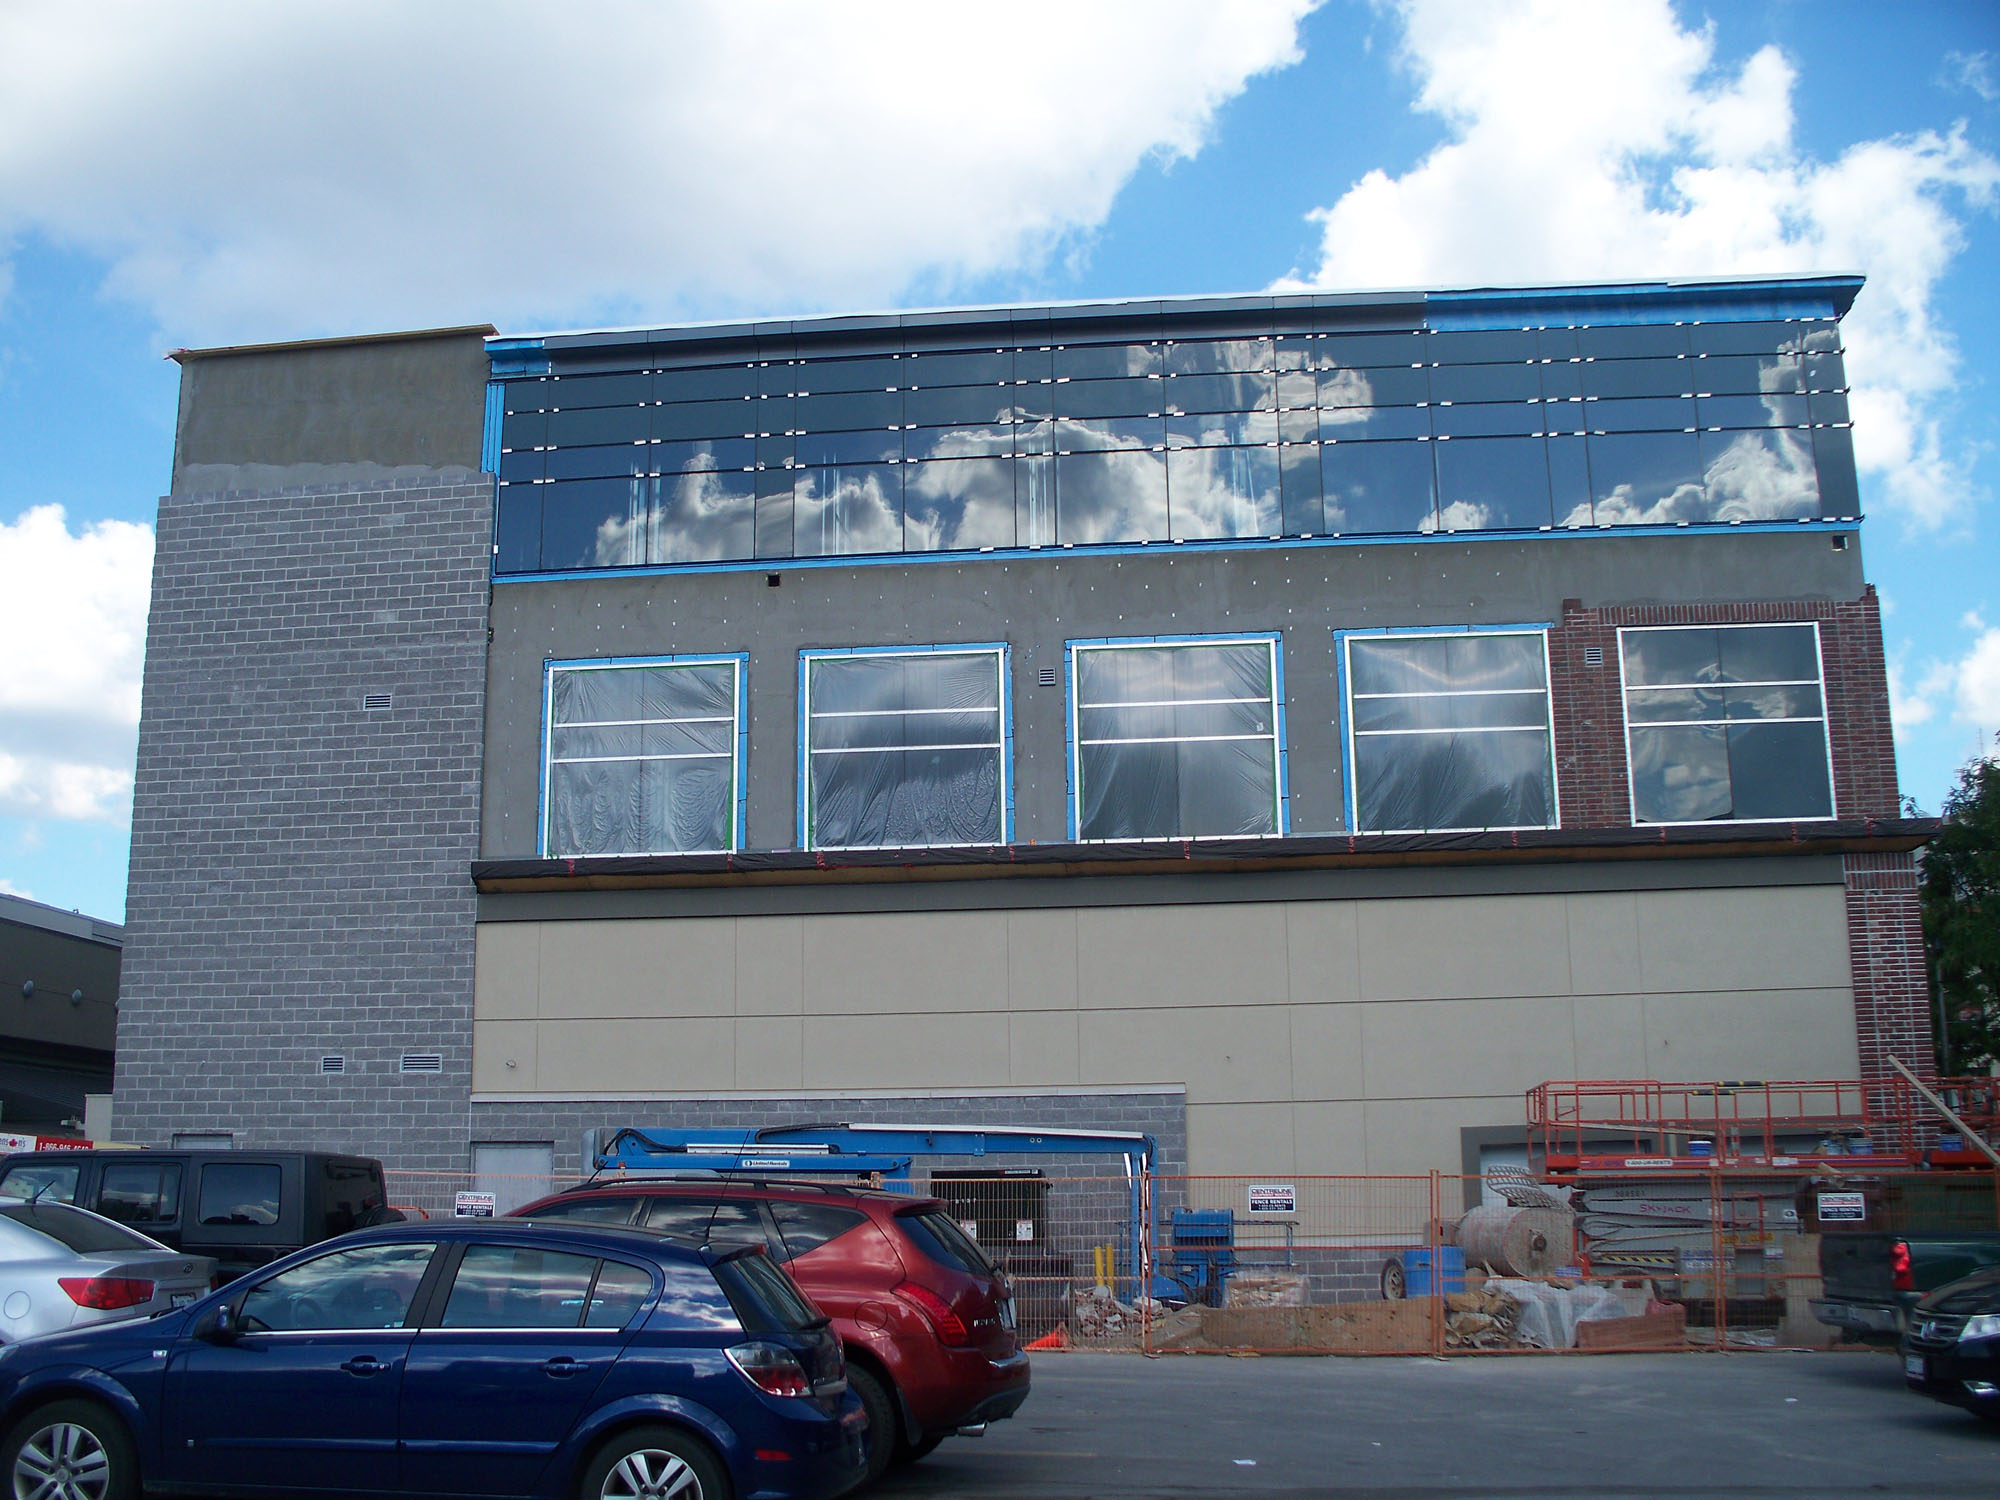 Photo Updates to Construction Projects - Page 2 - SkyscraperPage Forum